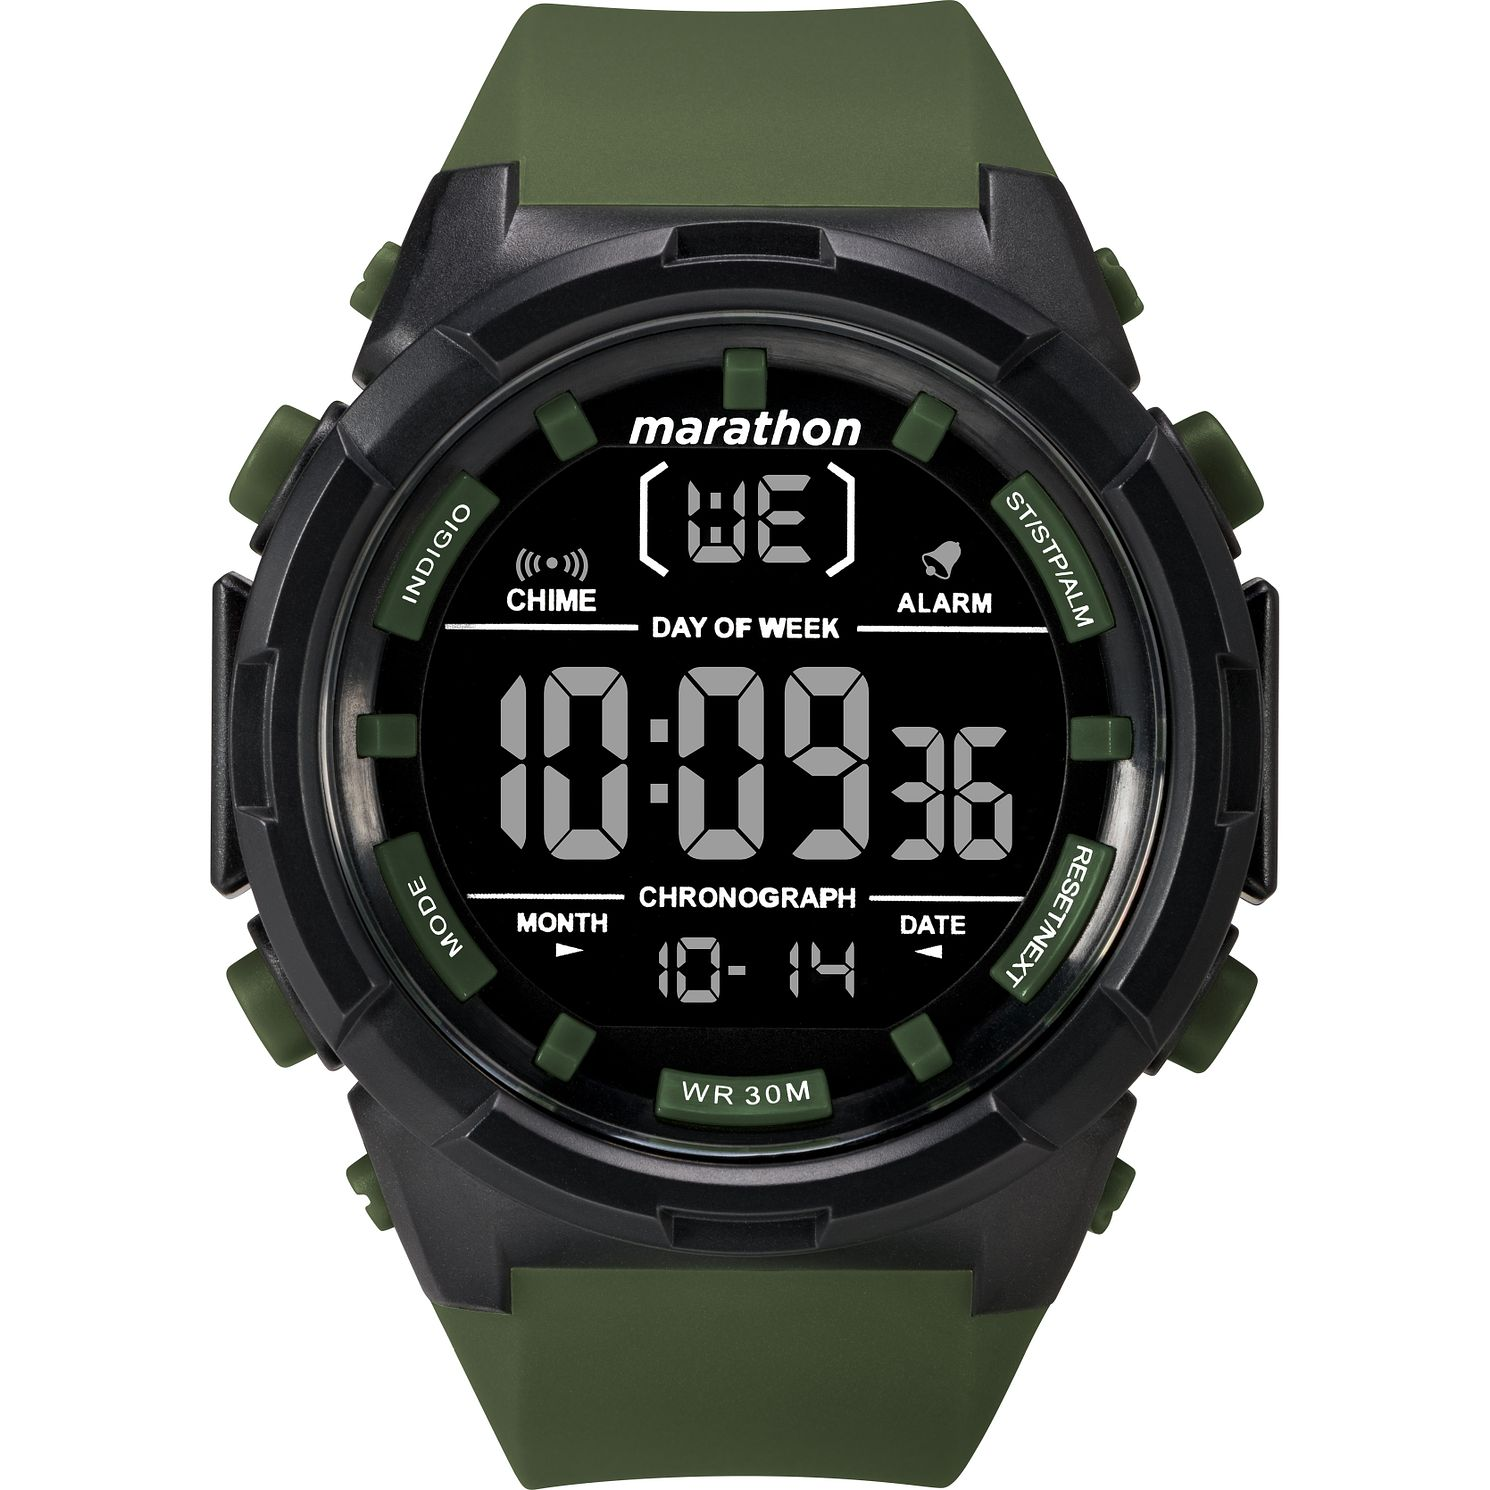 Timex Marathon Men's Digital Olive Green Resin Strap Watch - Product number 2892561